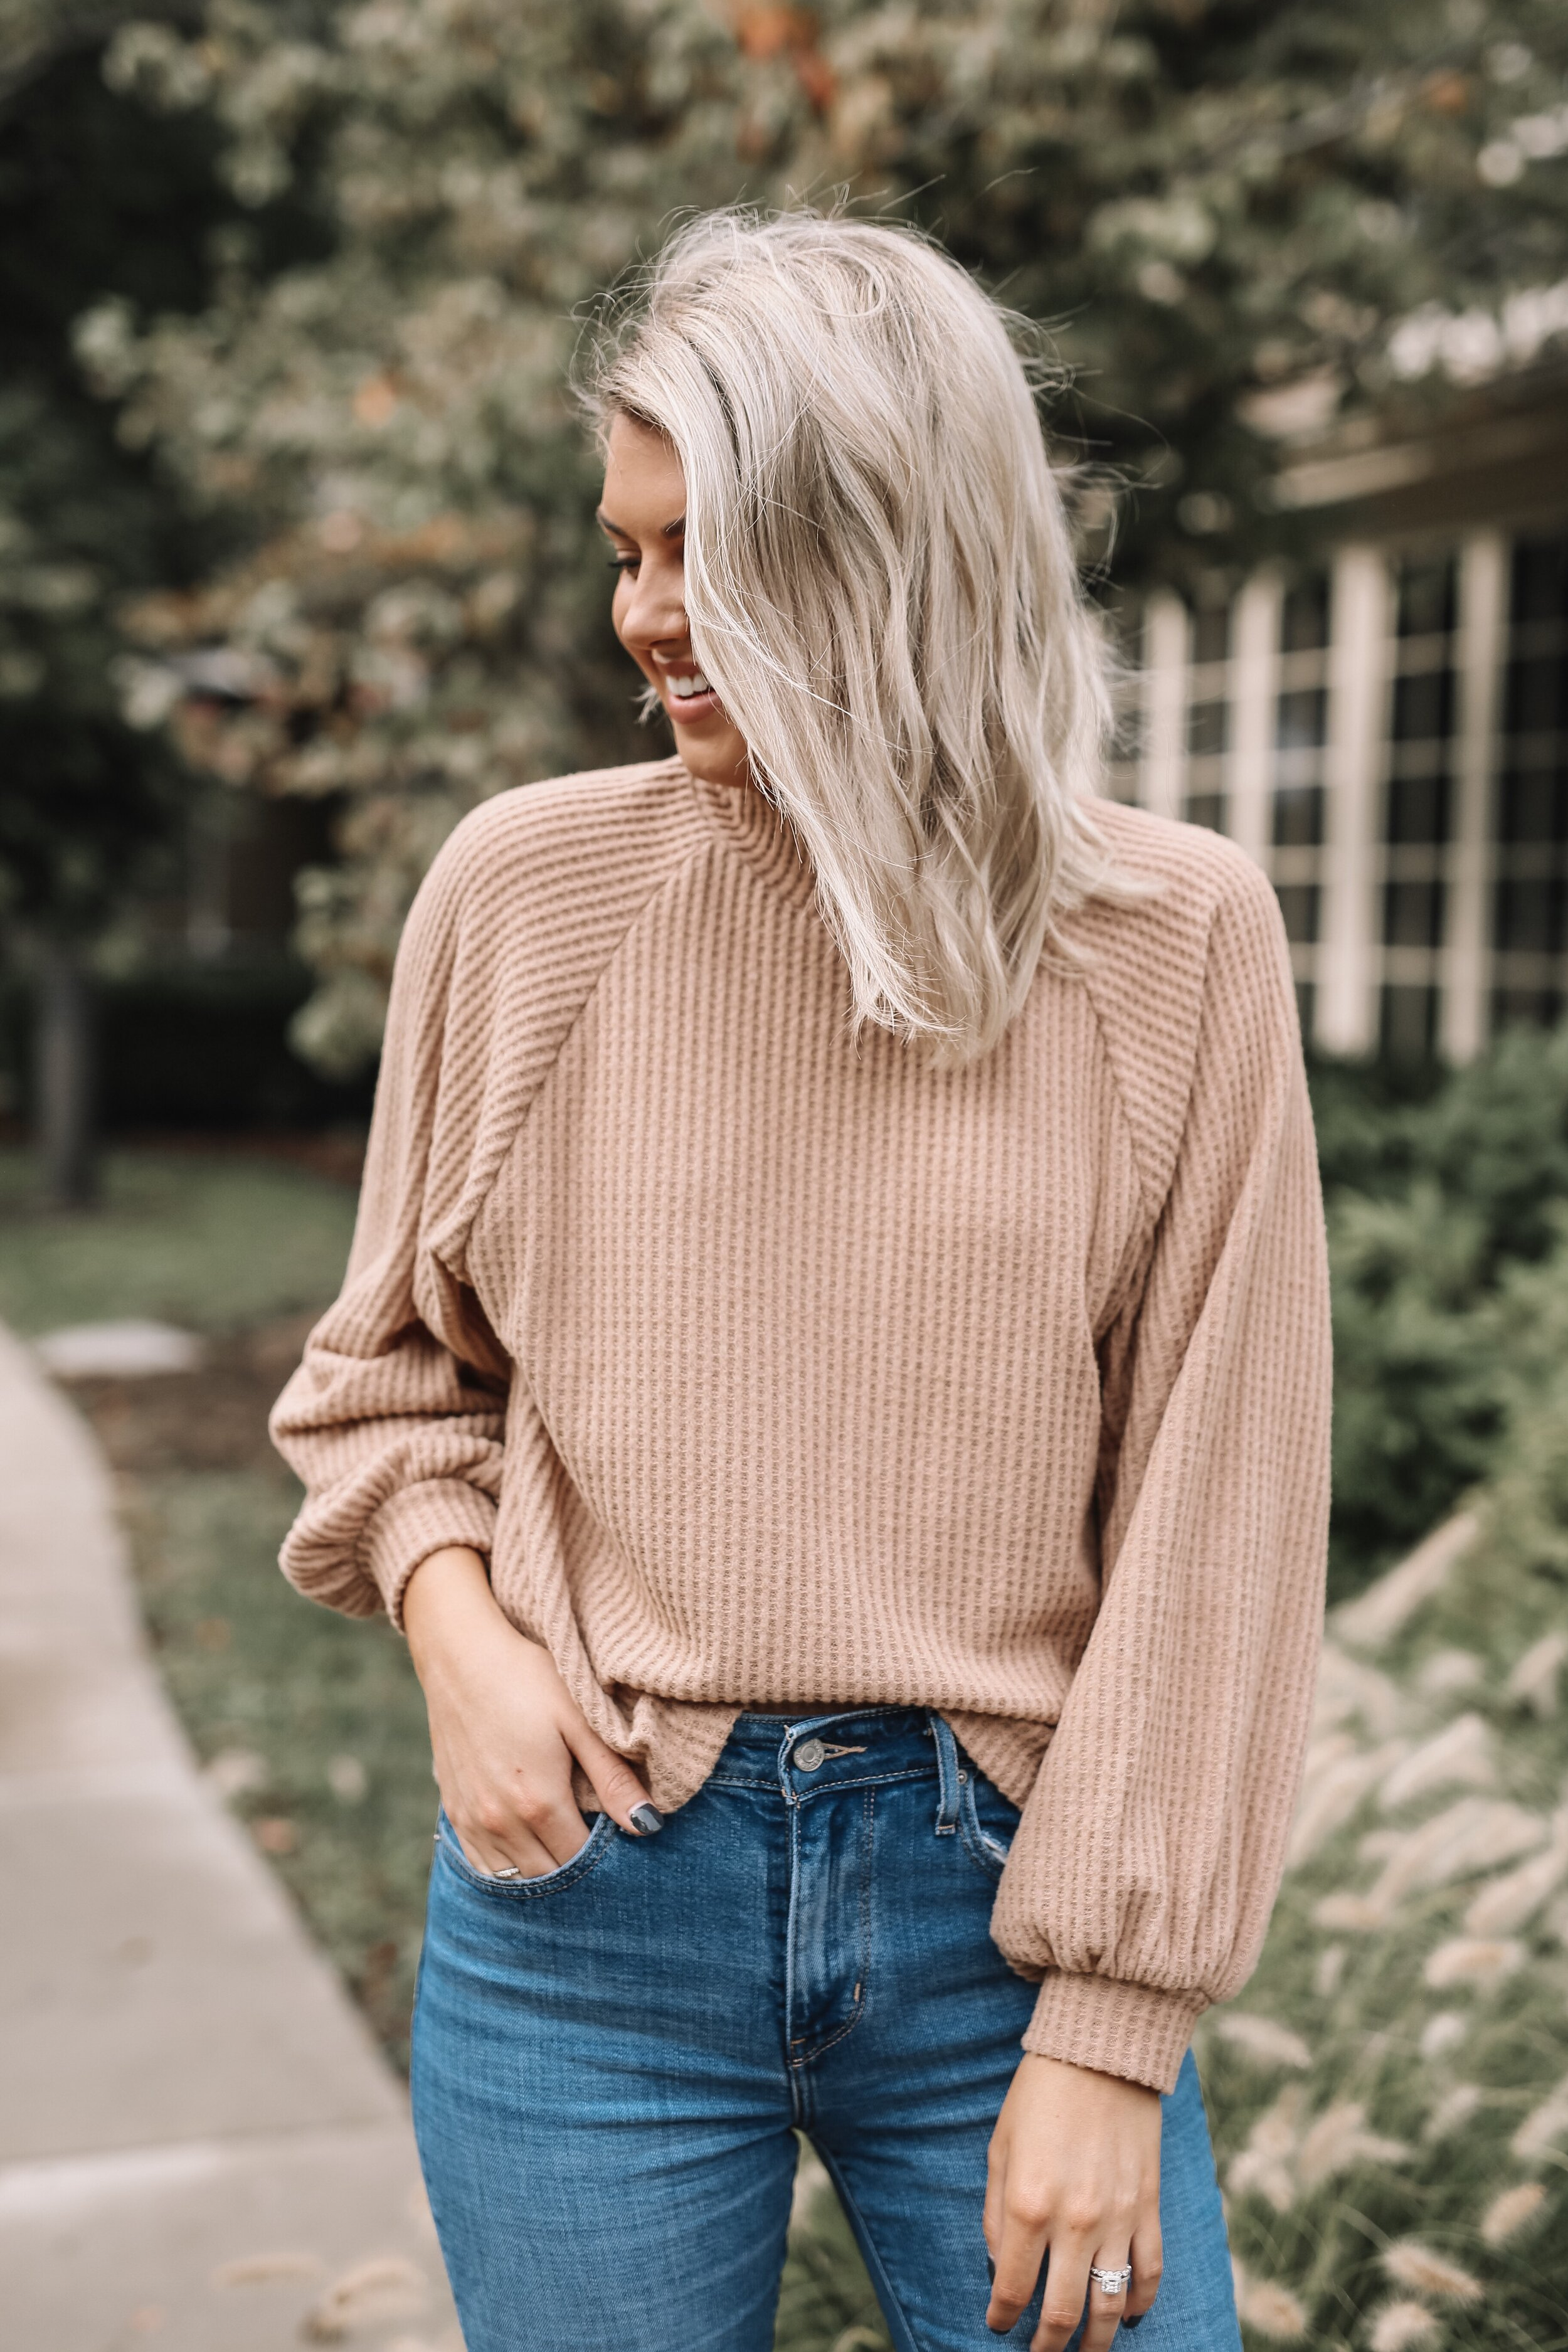 The comfiest mock neck sweater. Love this color.